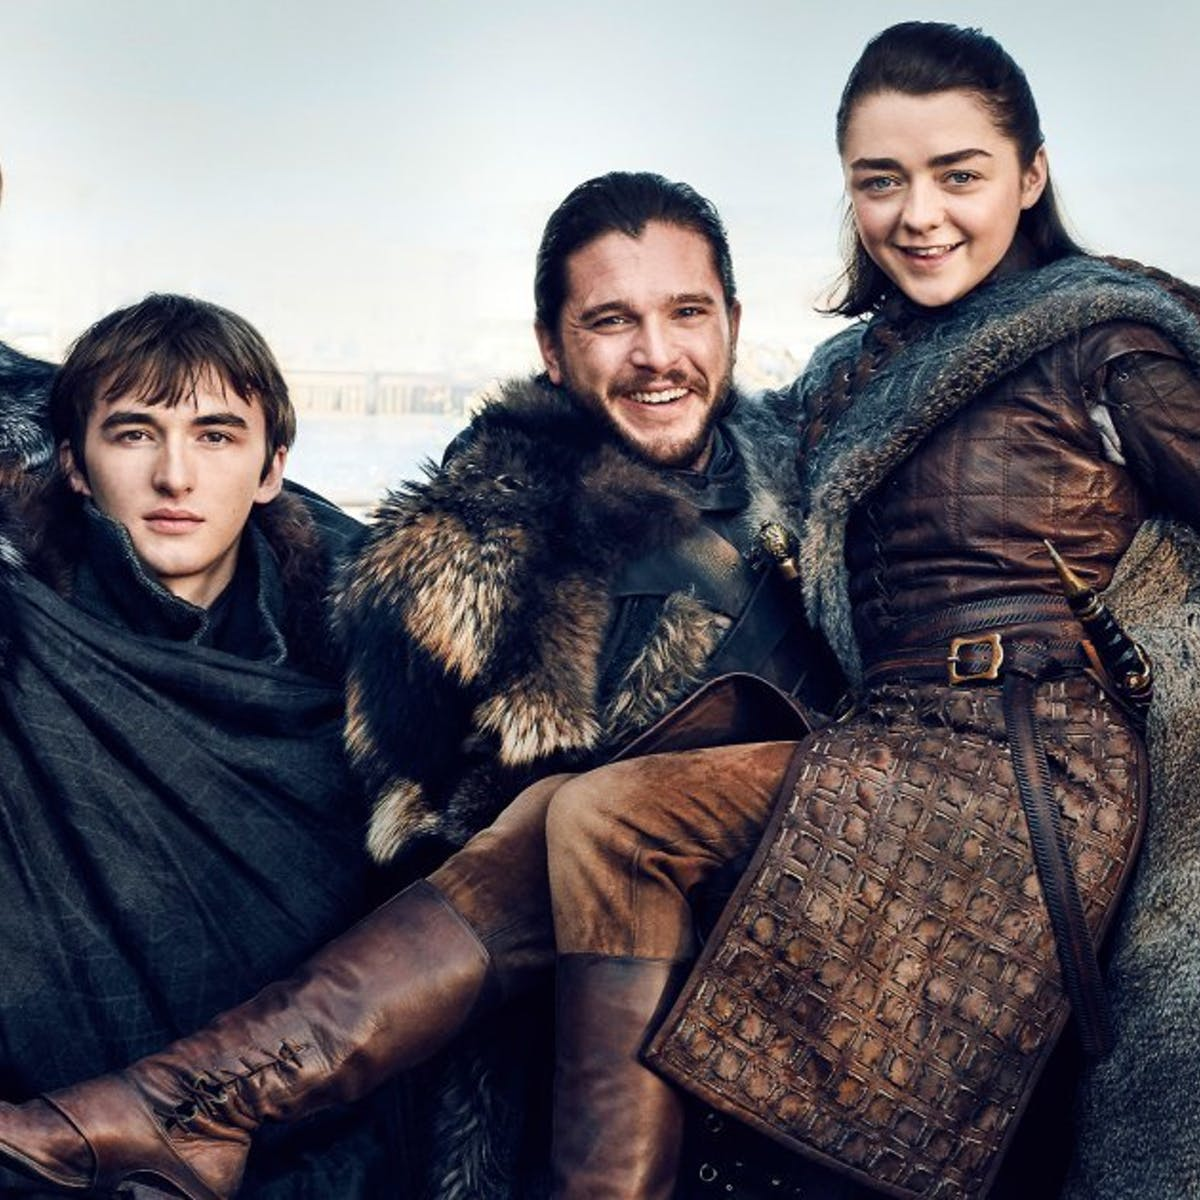 Game of thrones season 8 spoilers why these 3 characters may survive inverse